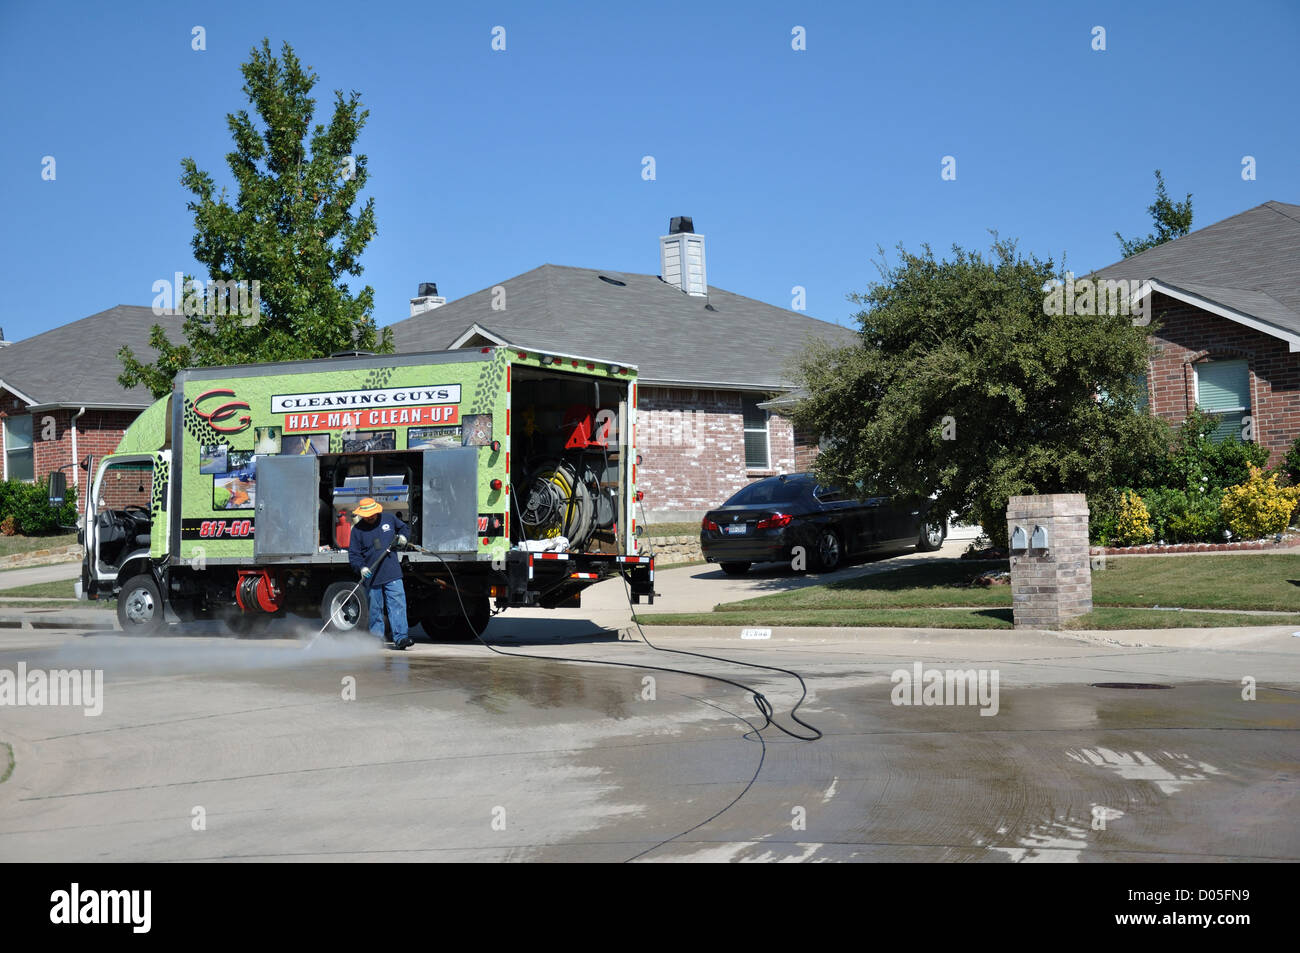 Hazmat spill cleaning on residential street, USA - Stock Image